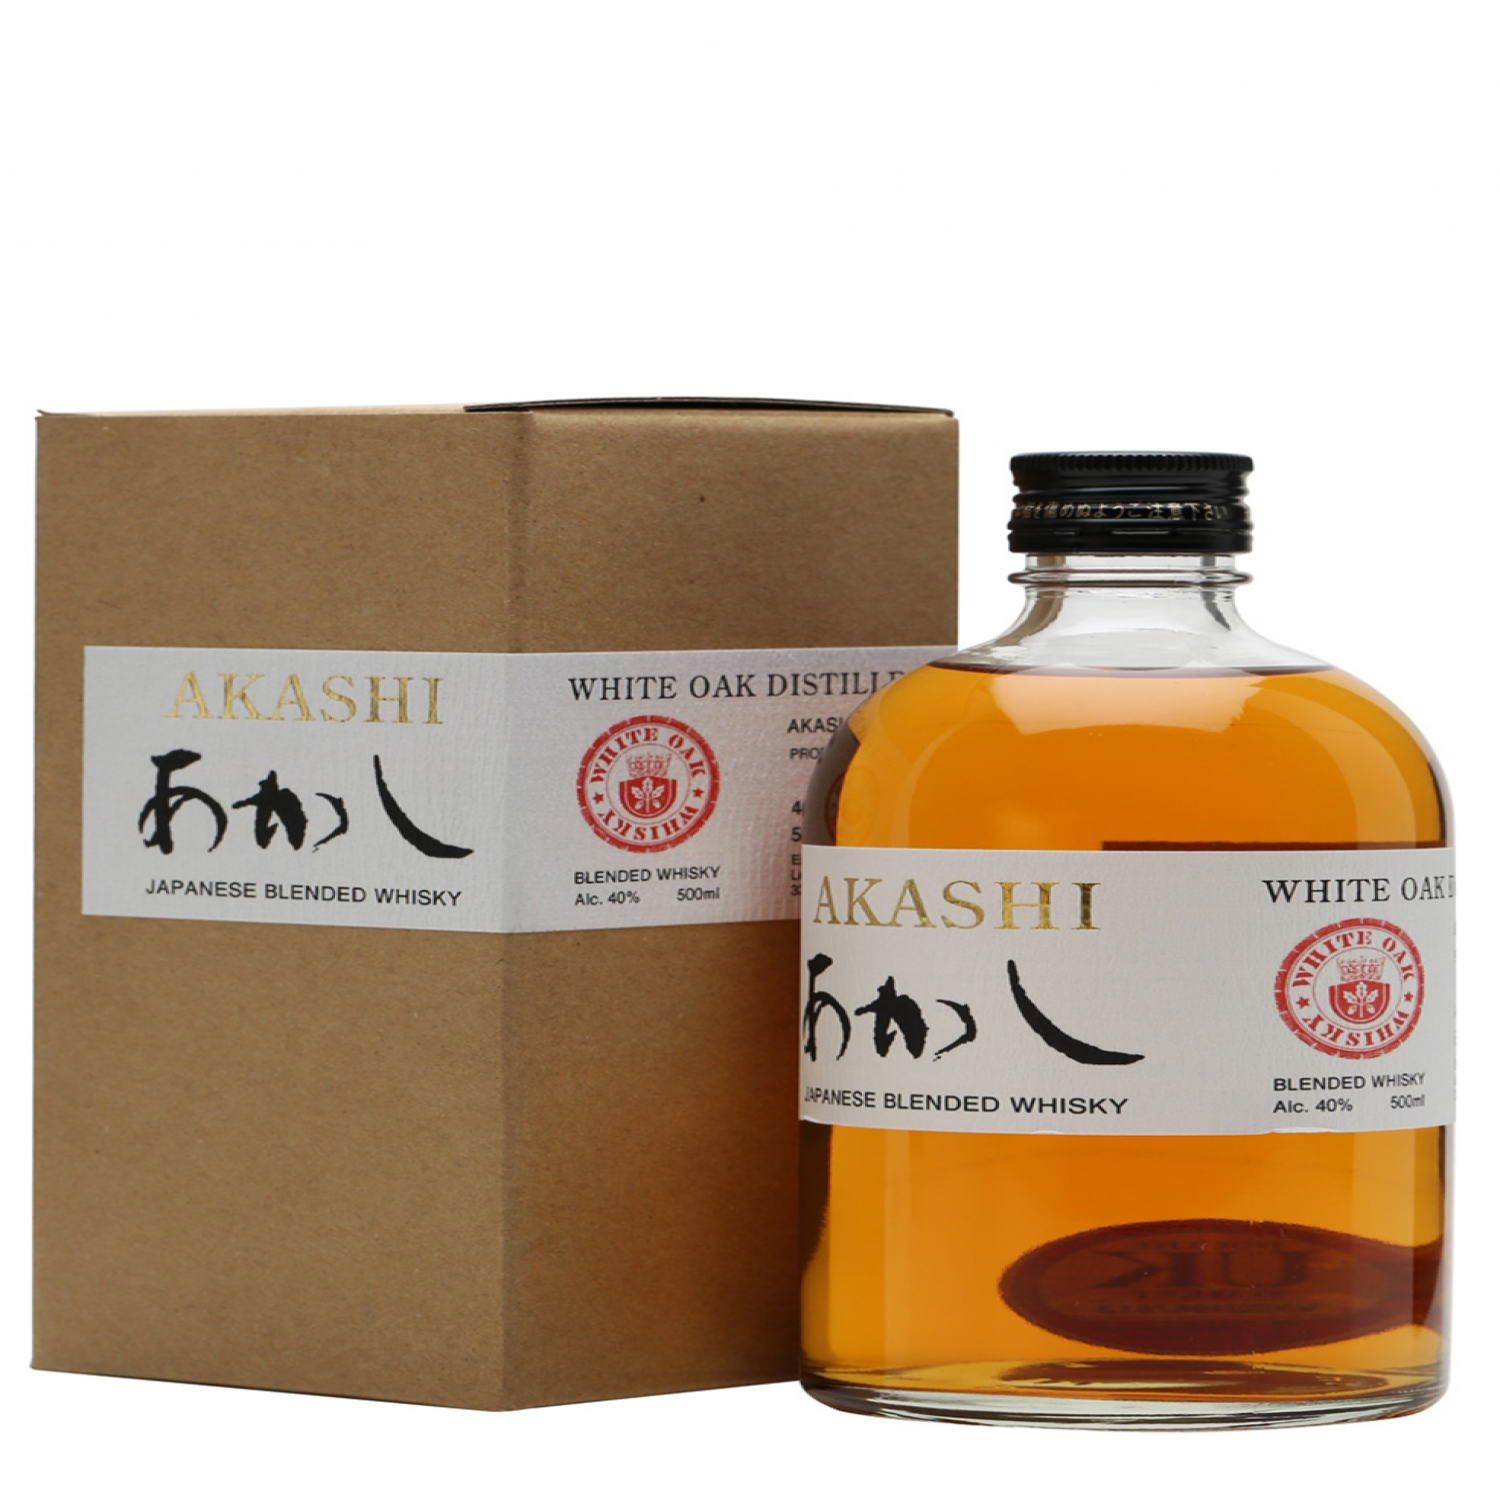 Rượu Akashi White Oak Blended Whisky 40% 500ml